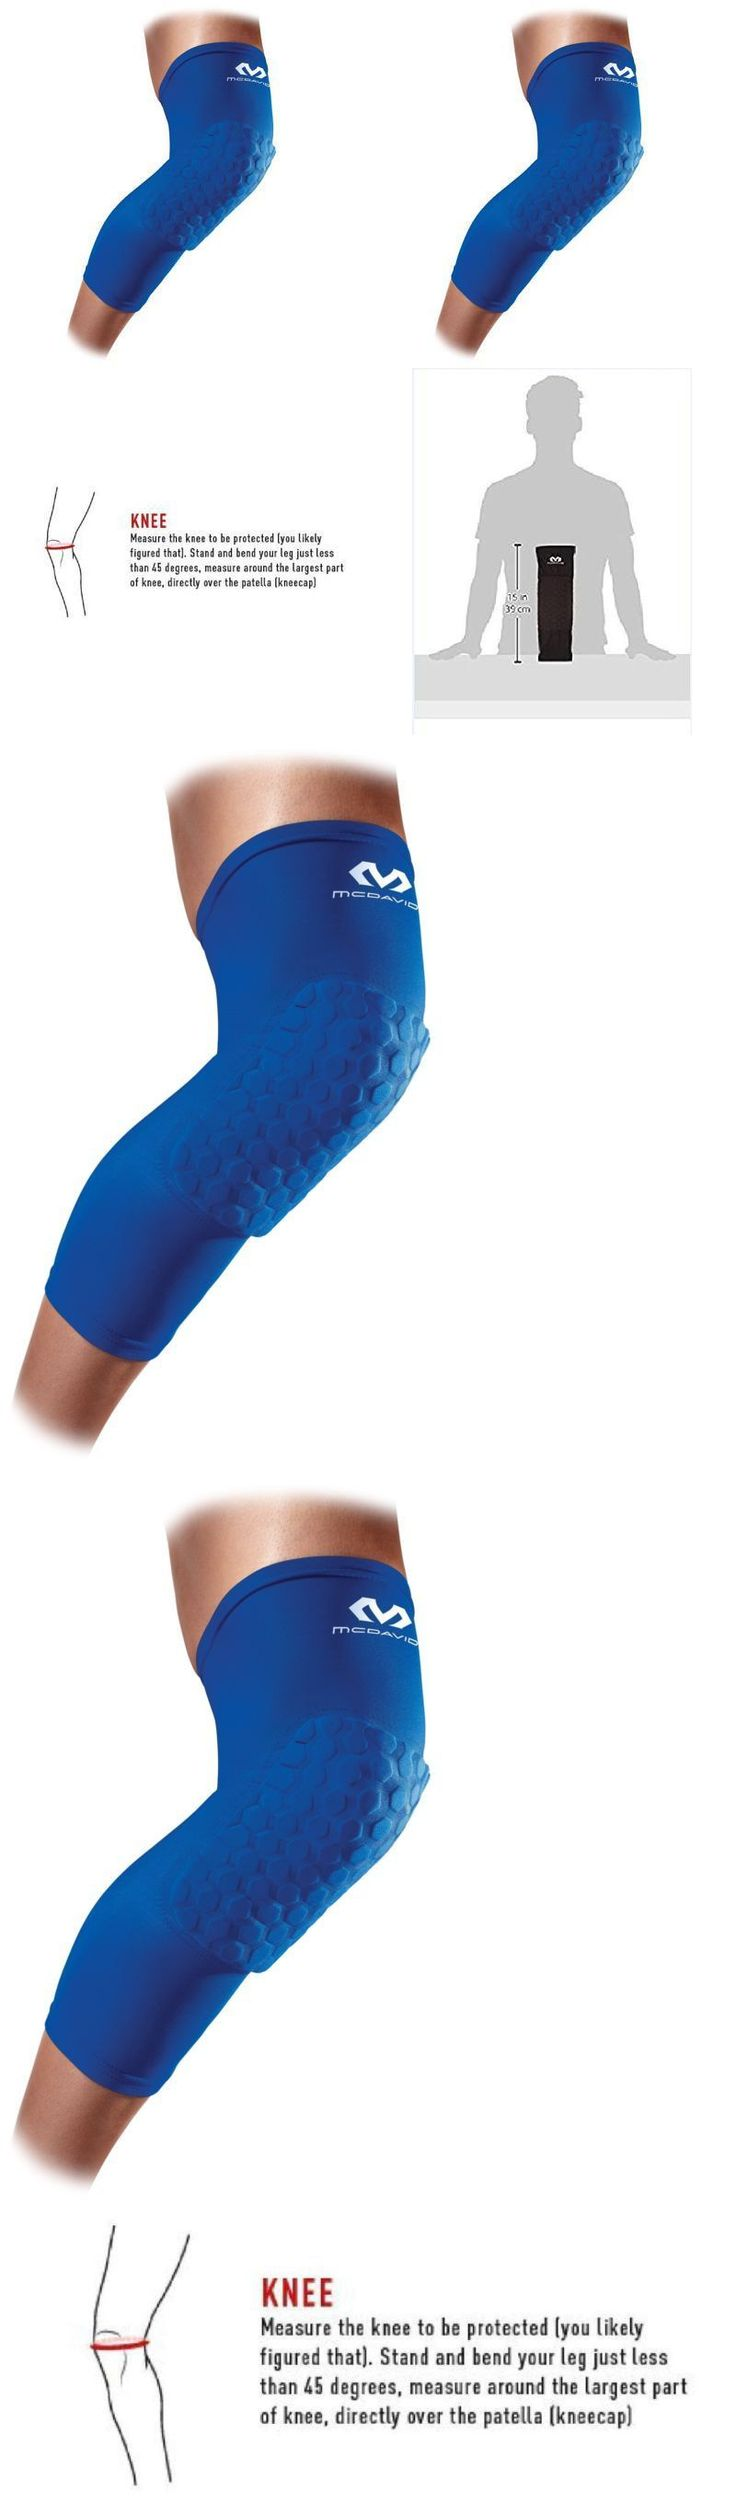 Orthotics Braces and Sleeves: Mcdavid Sports Medicine 6446 Hex Leg Sleeve, Large, Royal - One Pair -> BUY IT NOW ONLY: $31.75 on eBay!